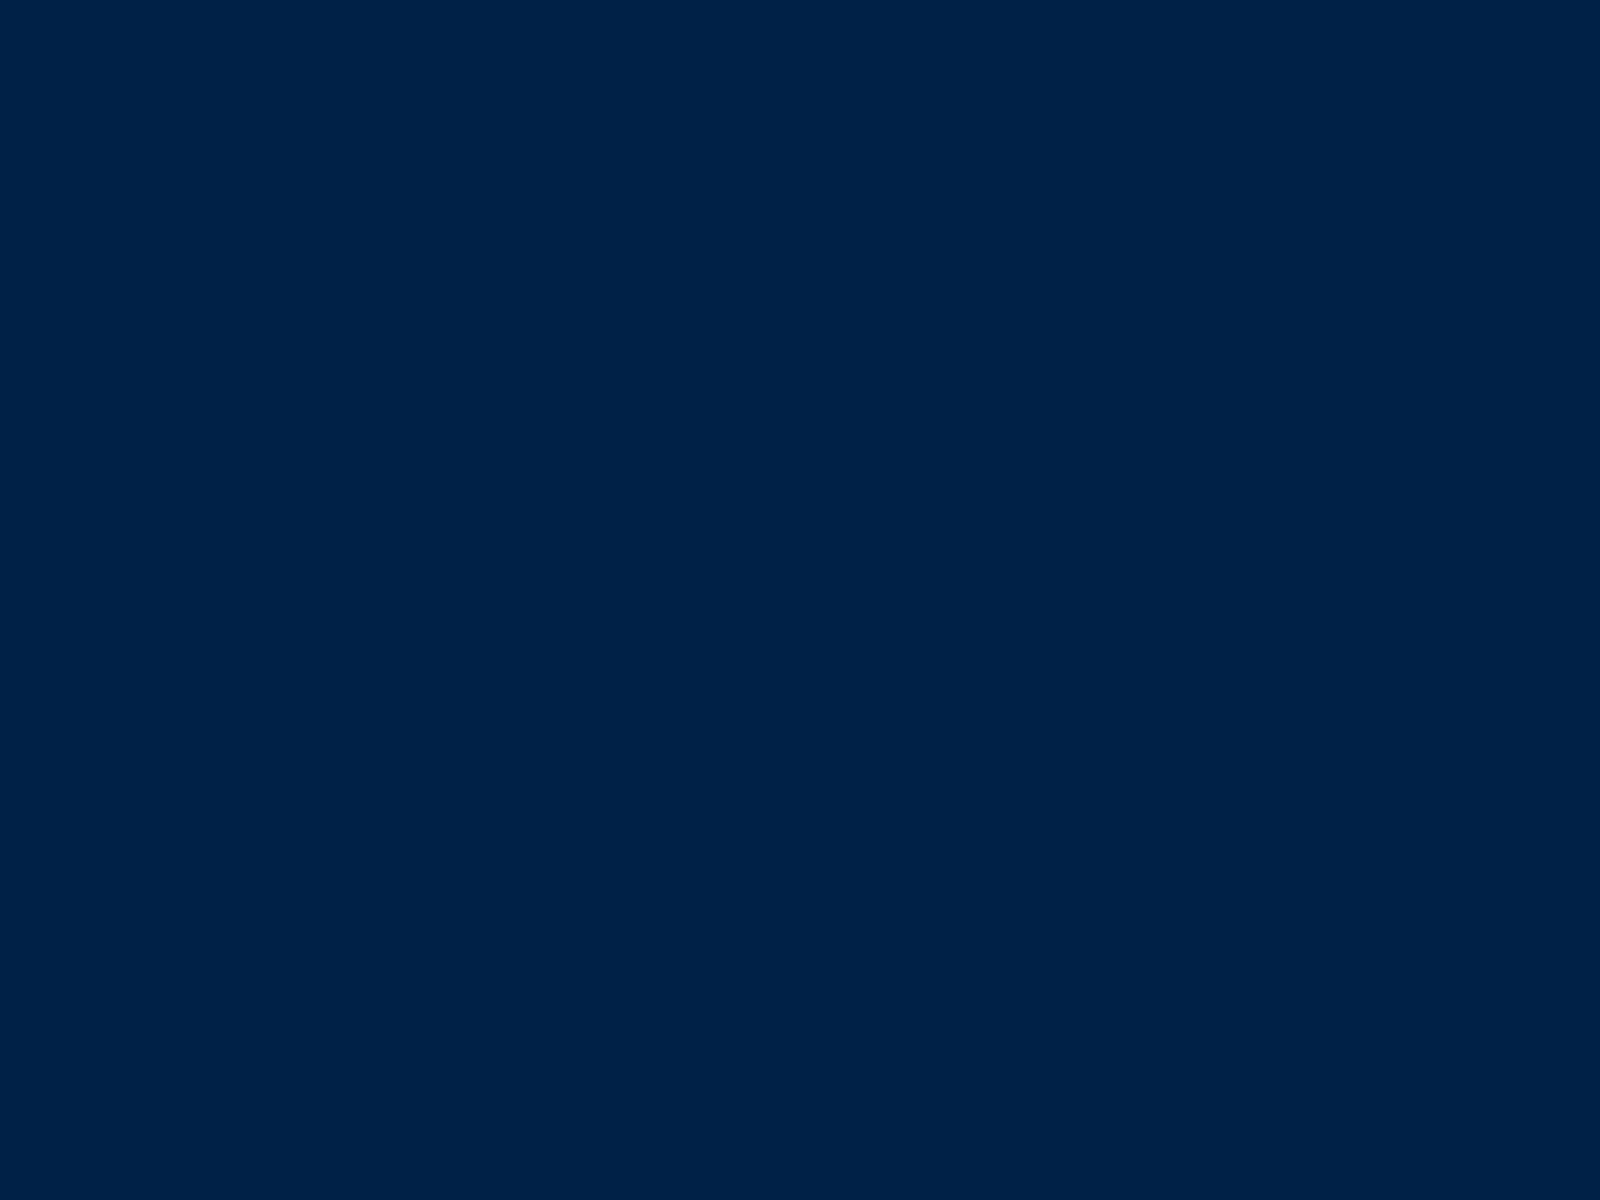 1600x1200 Oxford Blue Solid Color Background